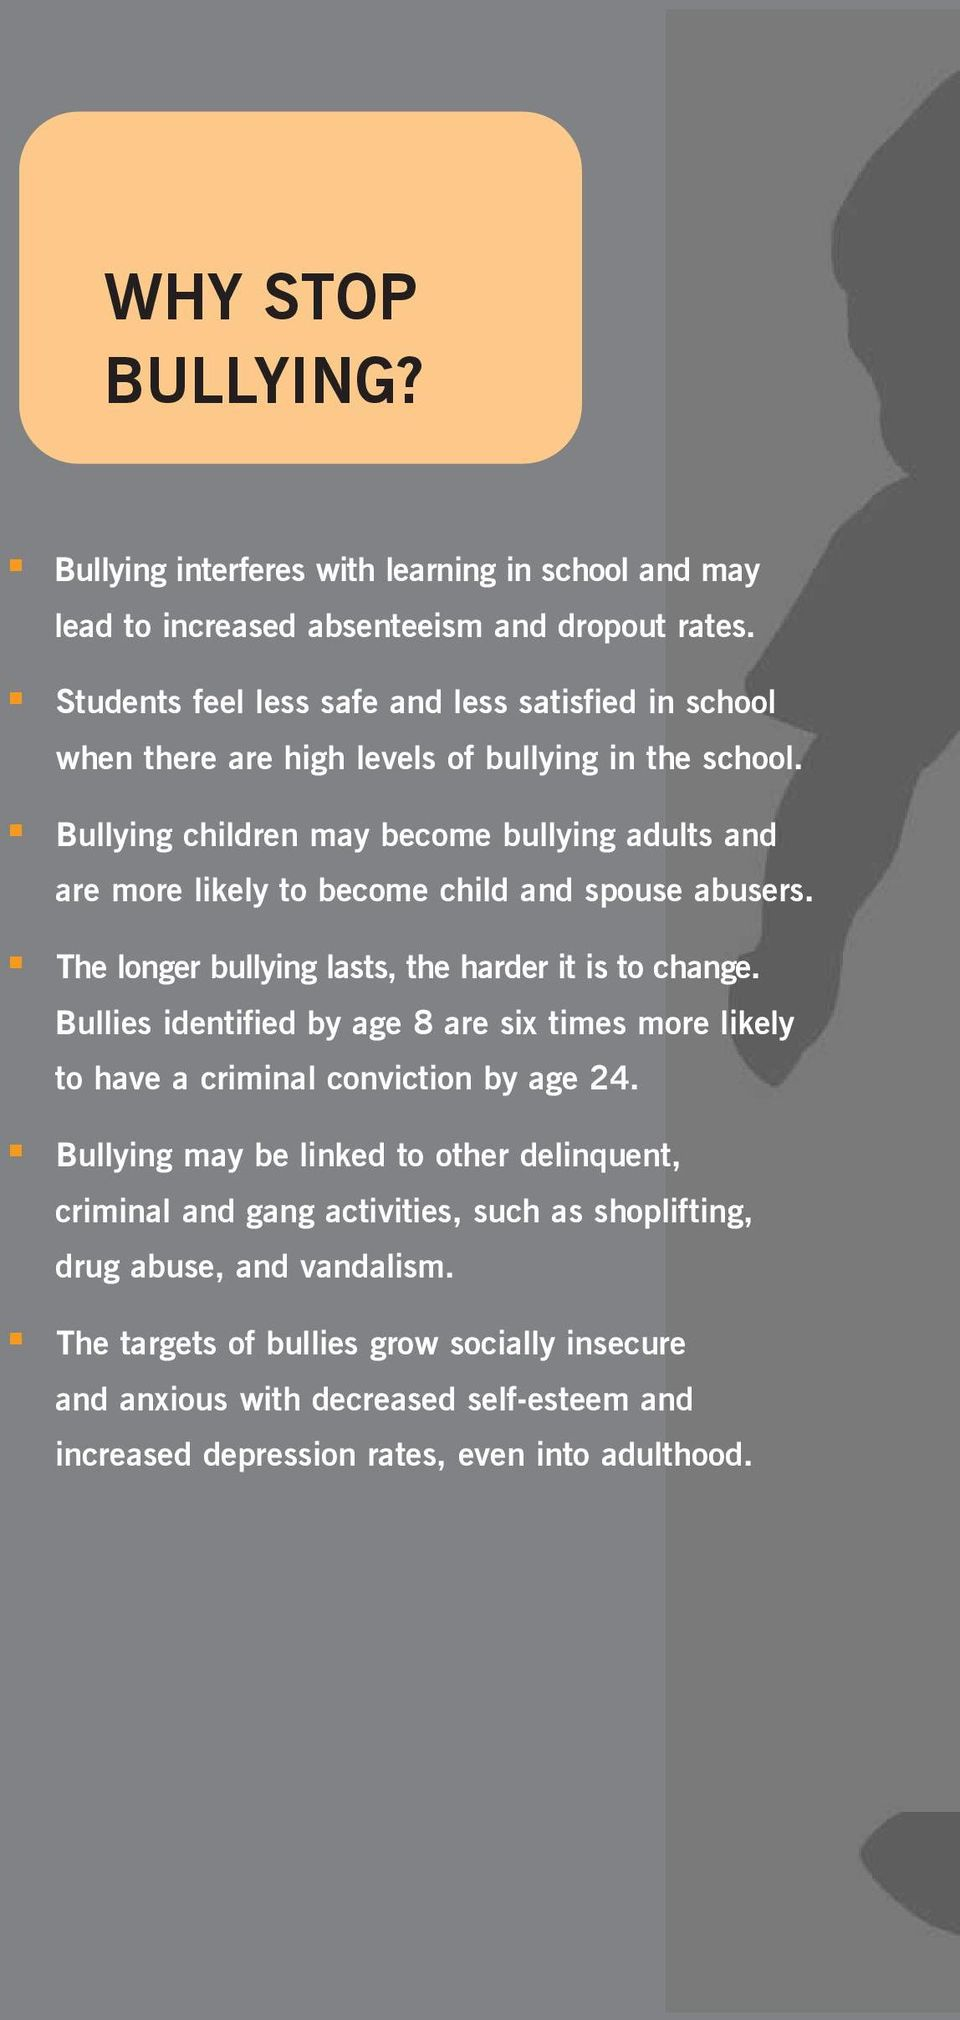 Bullying children may become bullying adults and are more likely to become child and spouse abusers. The longer bullying lasts, the harder it is to change.